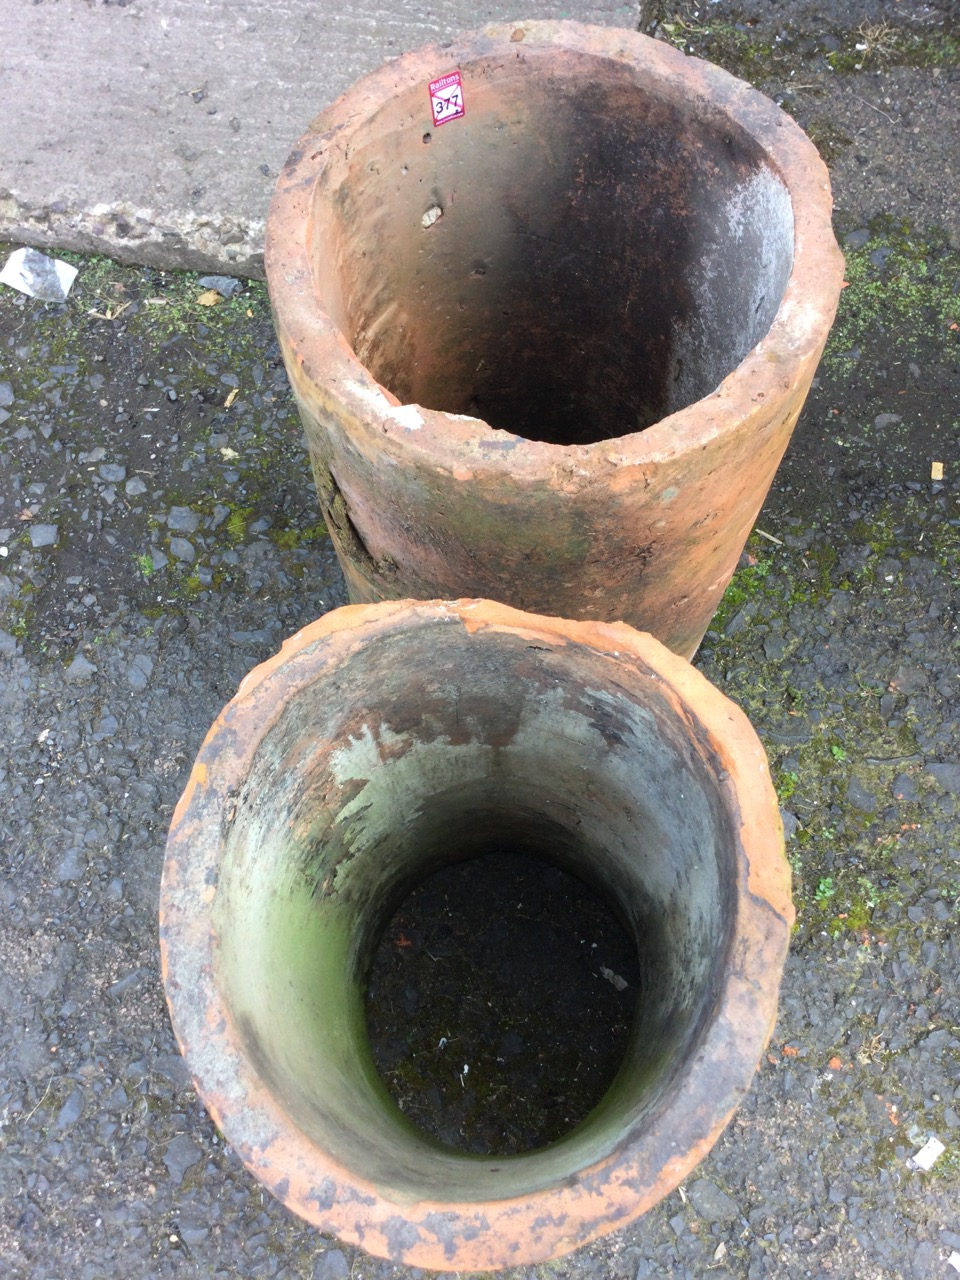 A pair of large tubular terracotta pipes - used as garden planters. (14in x 24in) (2) - Image 3 of 3